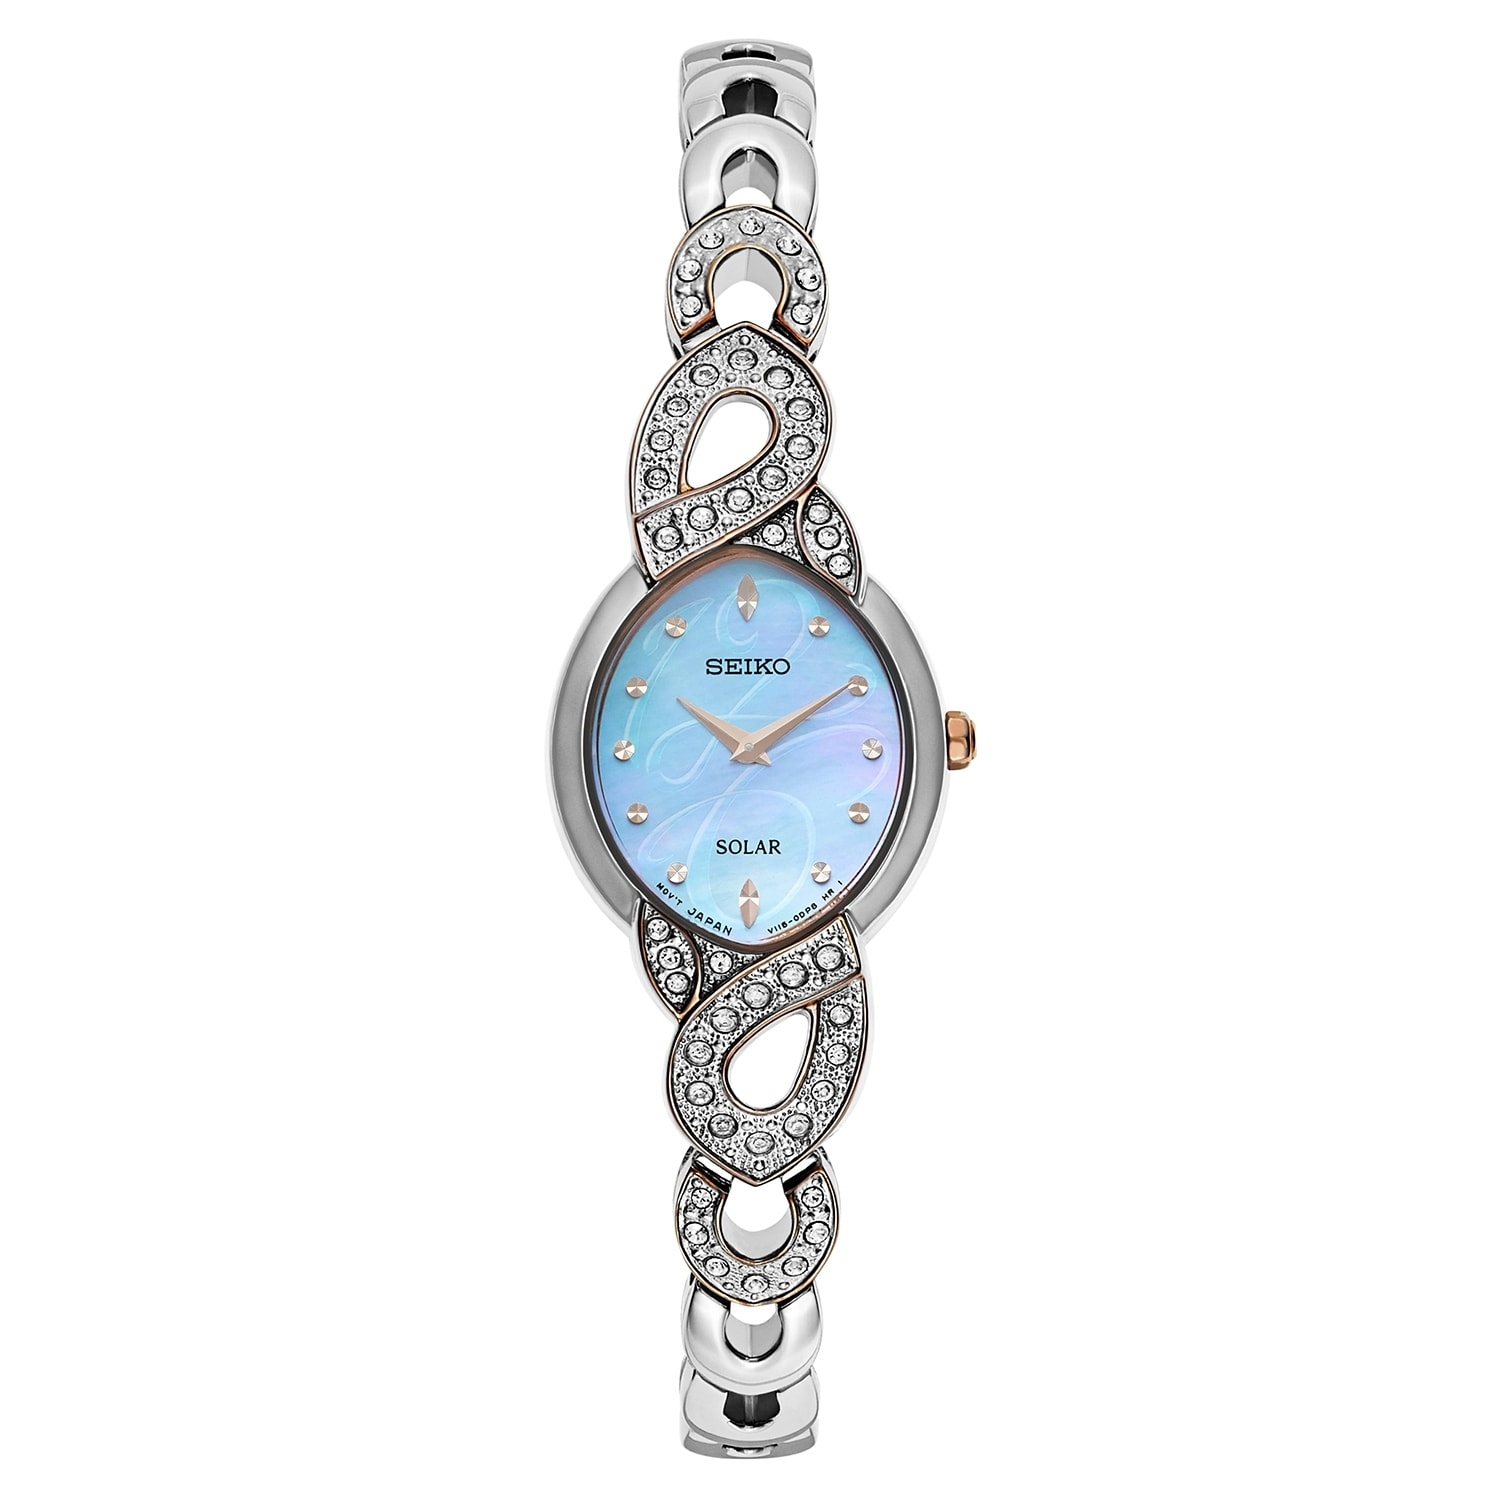 Seiko Core SUP340 Women's Watch, Green, Size One Size Fit...